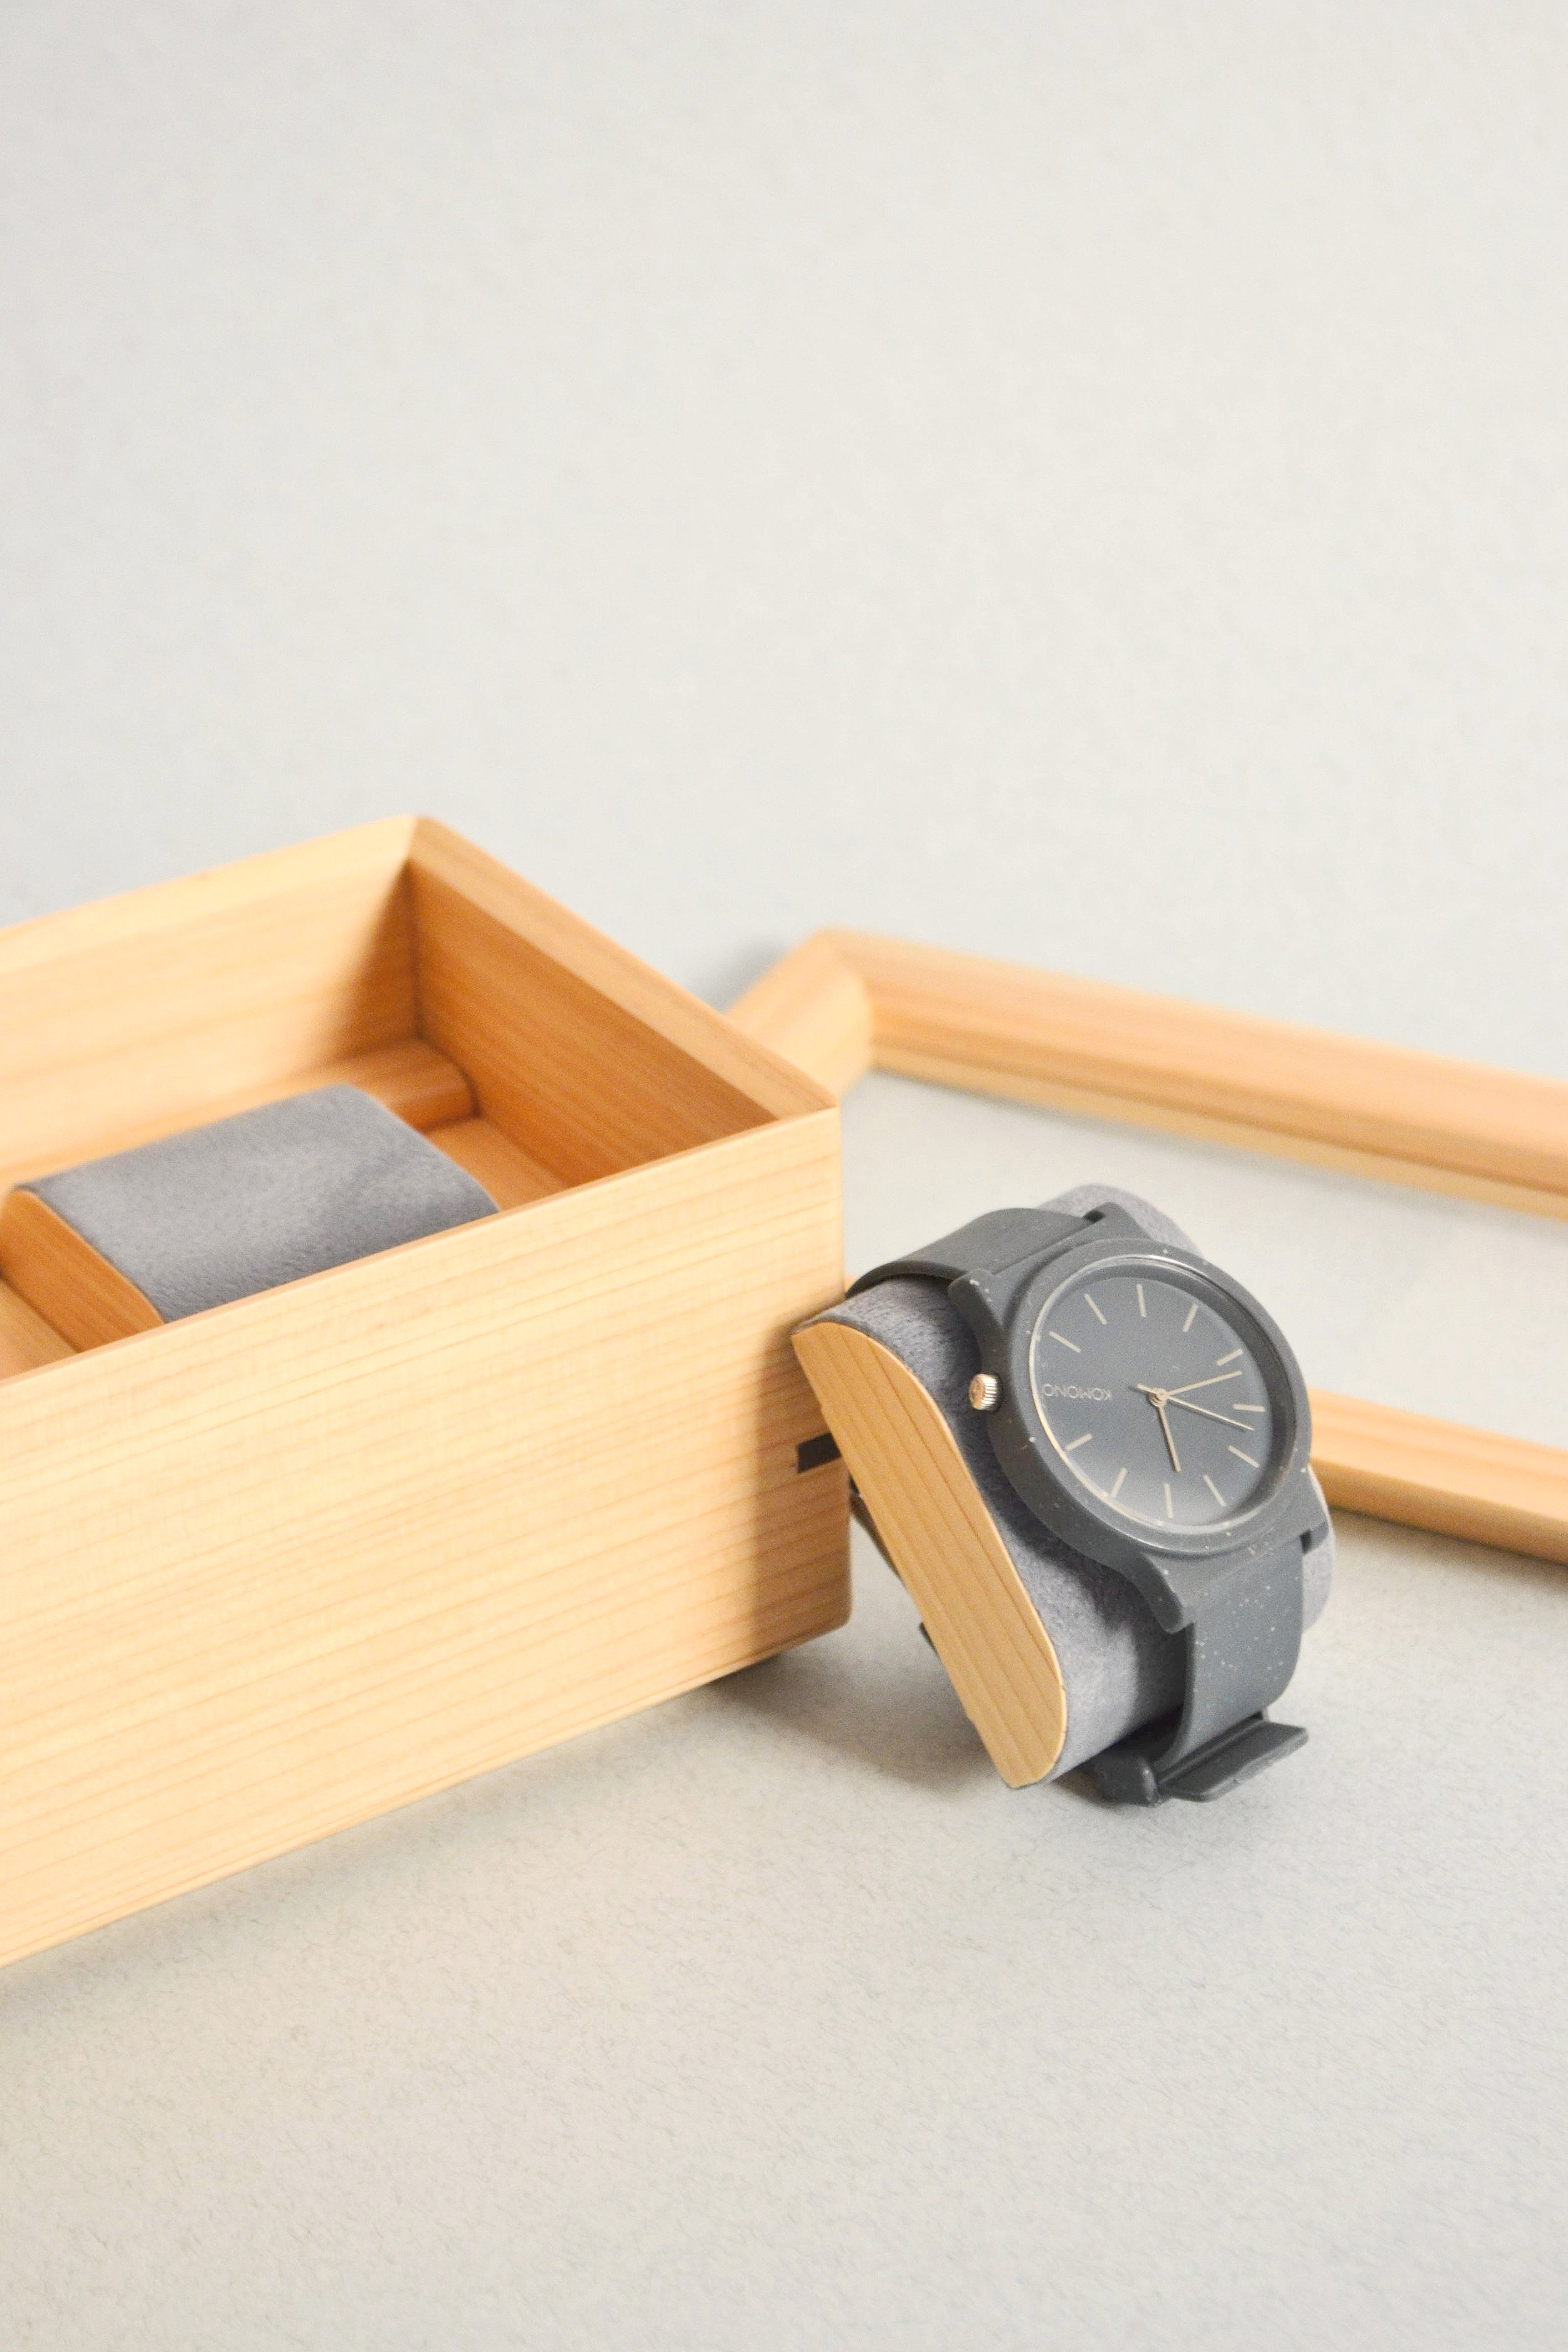 Atelier+Takumi+_+Watch+storage+Hako+-+crafted+by+Toyooka+Craft+designed+by+Flavien+Delbergue3.jpg